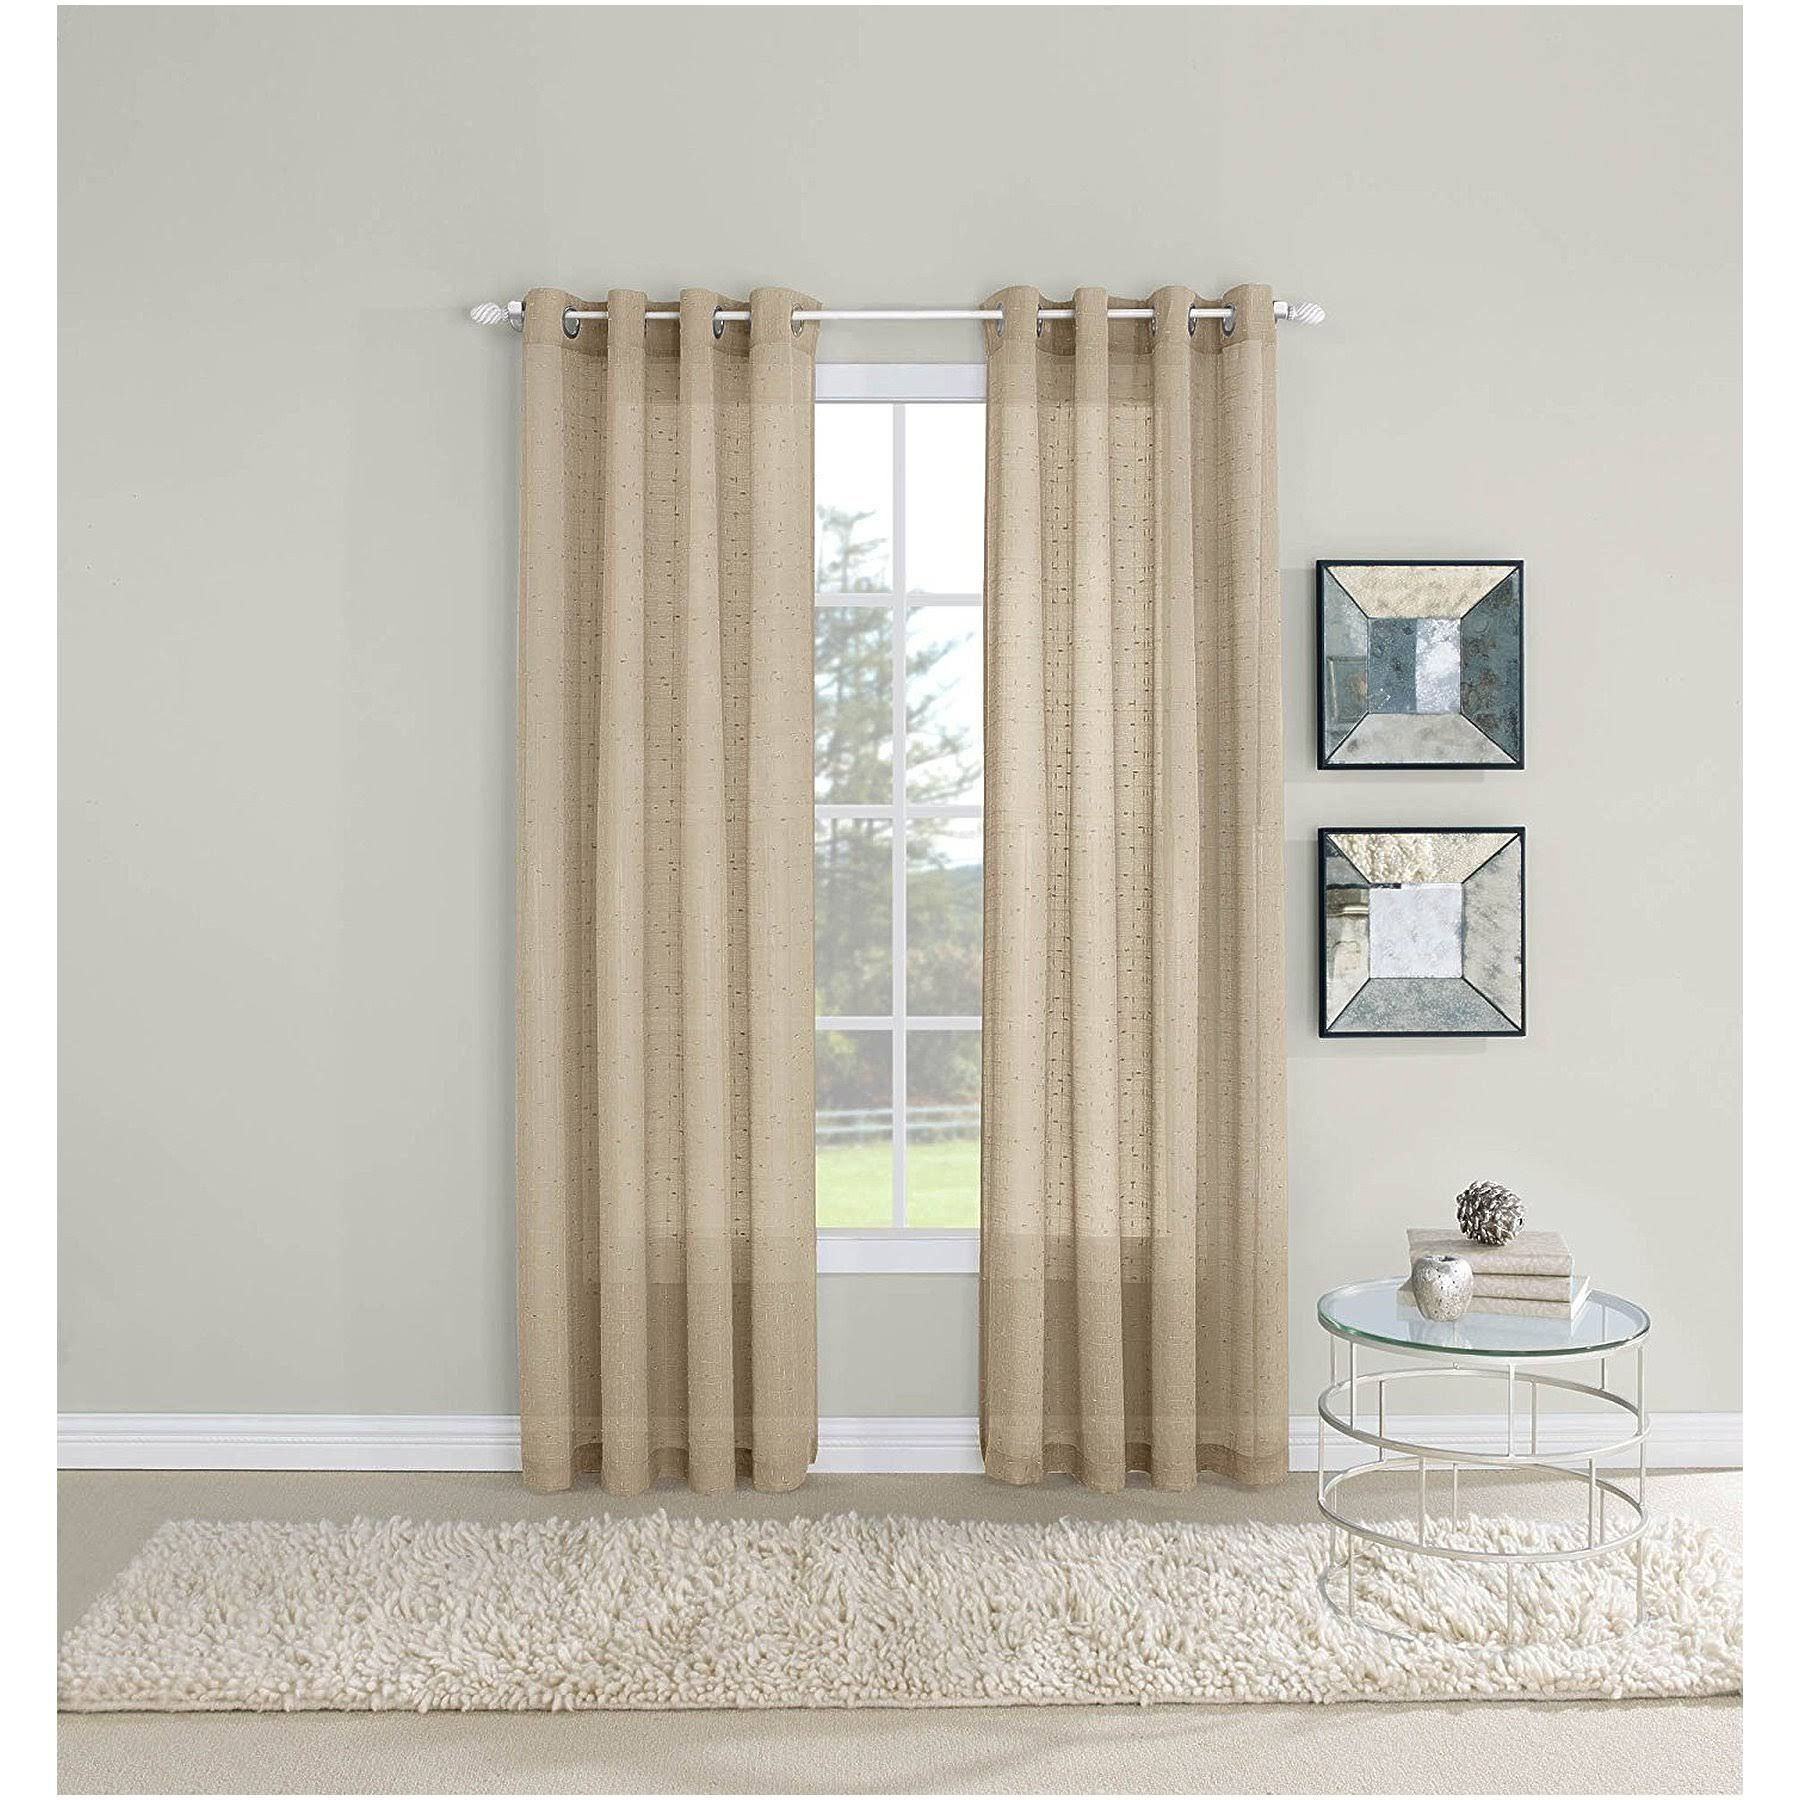 Twill & Birch Maze Sheer Grommet Curtain Panel